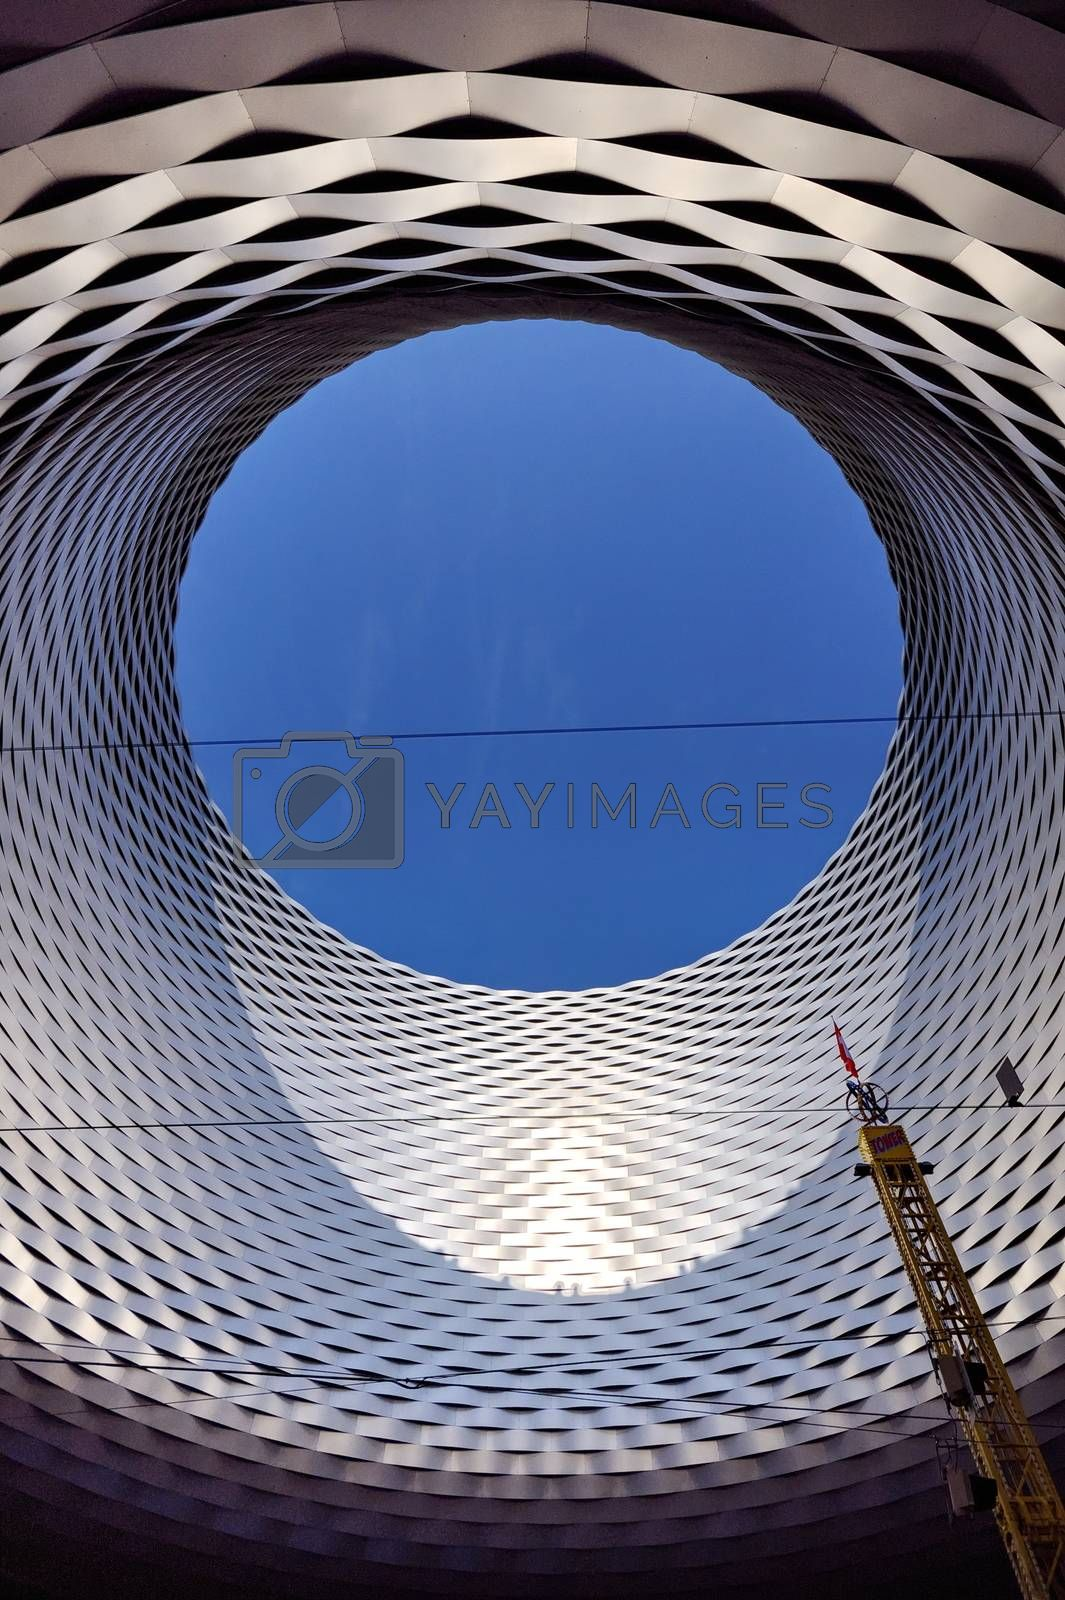 Royalty free image of BASEL, SWITZERLAND - NOVEMBER 01 2014: Exhibition Center in the  by anderm